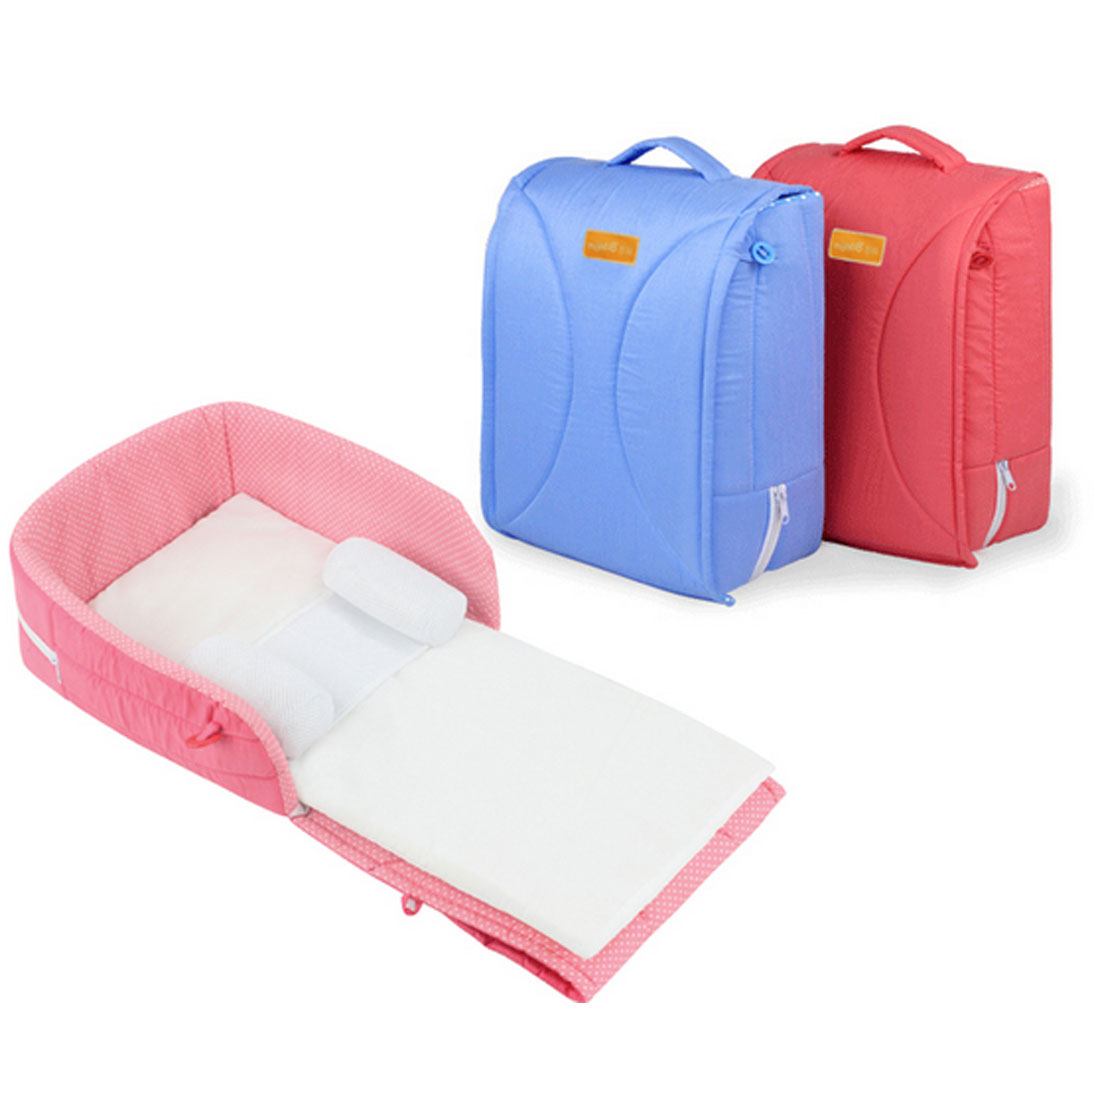 Baby cribs good quality - High Quality Portable Foldable Newborn Crib Combination Baby Travel Bed Removable Handbag Design Mattress With Pillows 2pcs Set